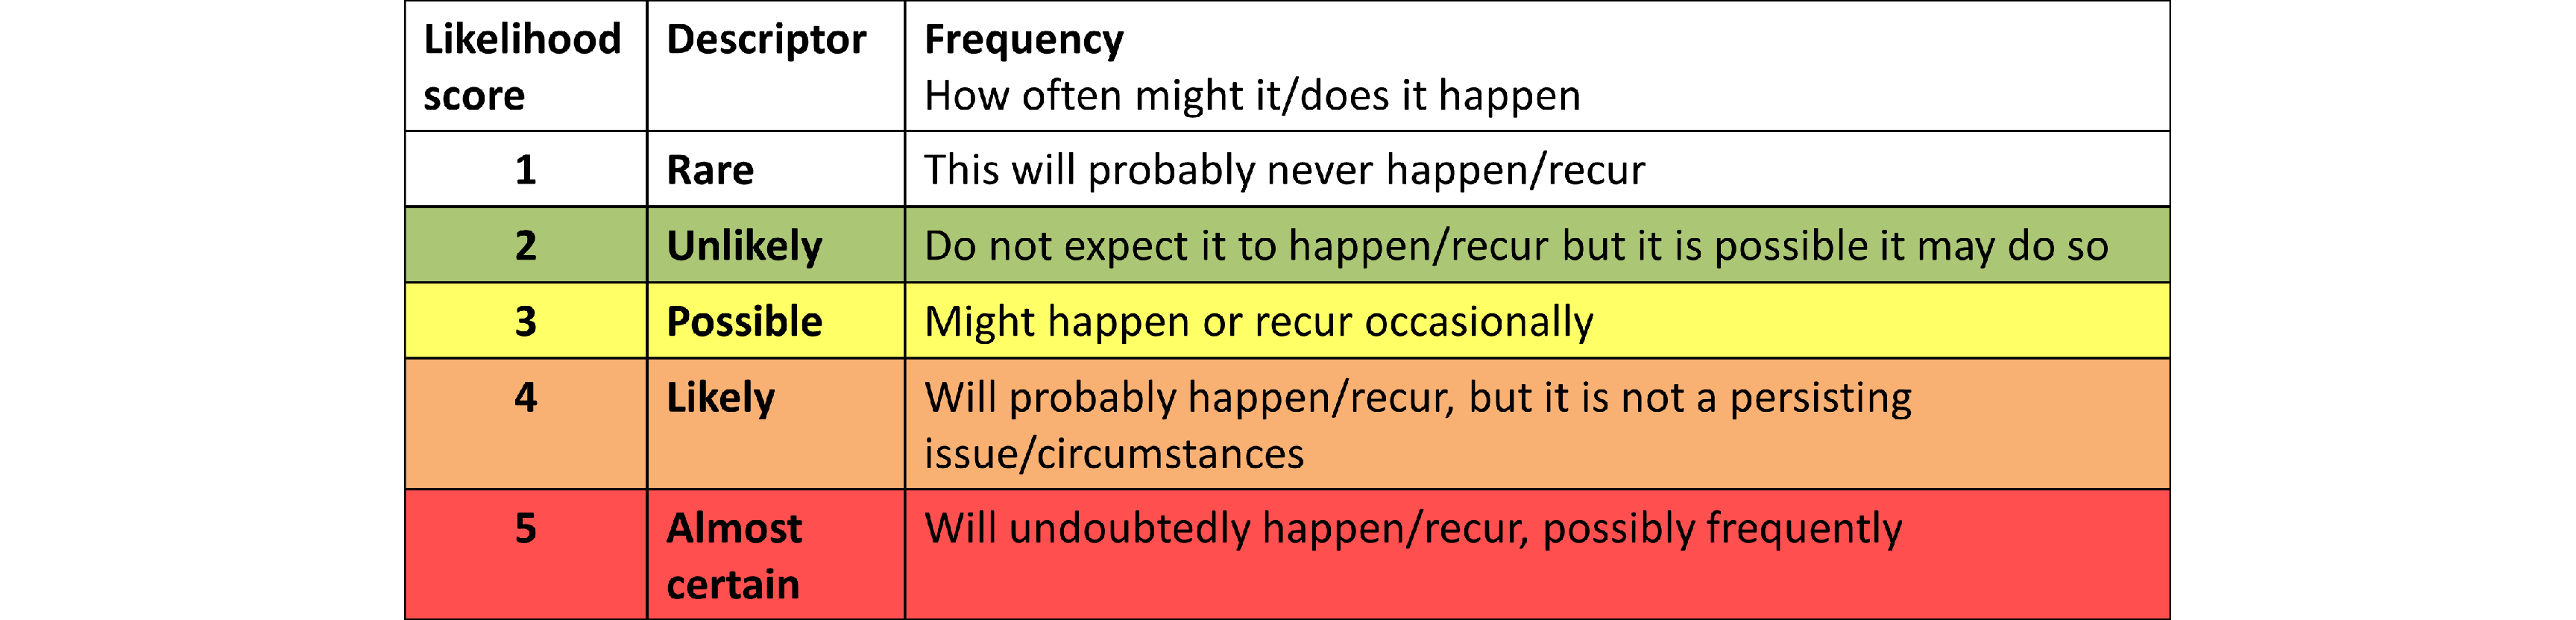 A table of likelihood score definitions. A score of 1 (Rare) is defined as: This will probably never happen or recur. A score of 2 (Unlikely) is defined as: Do not expect it to happen or recur but it is possible it may do so. A score of 3 (Possible) is defined as: Might happen or recur occasionally. A score of 4 (Likely) is defined as: Will probably happen or recur but is not a persistent issue. A score of 5 (Almost certain) is defined as: Will undoubtedly happen or recur, possibly frequently.